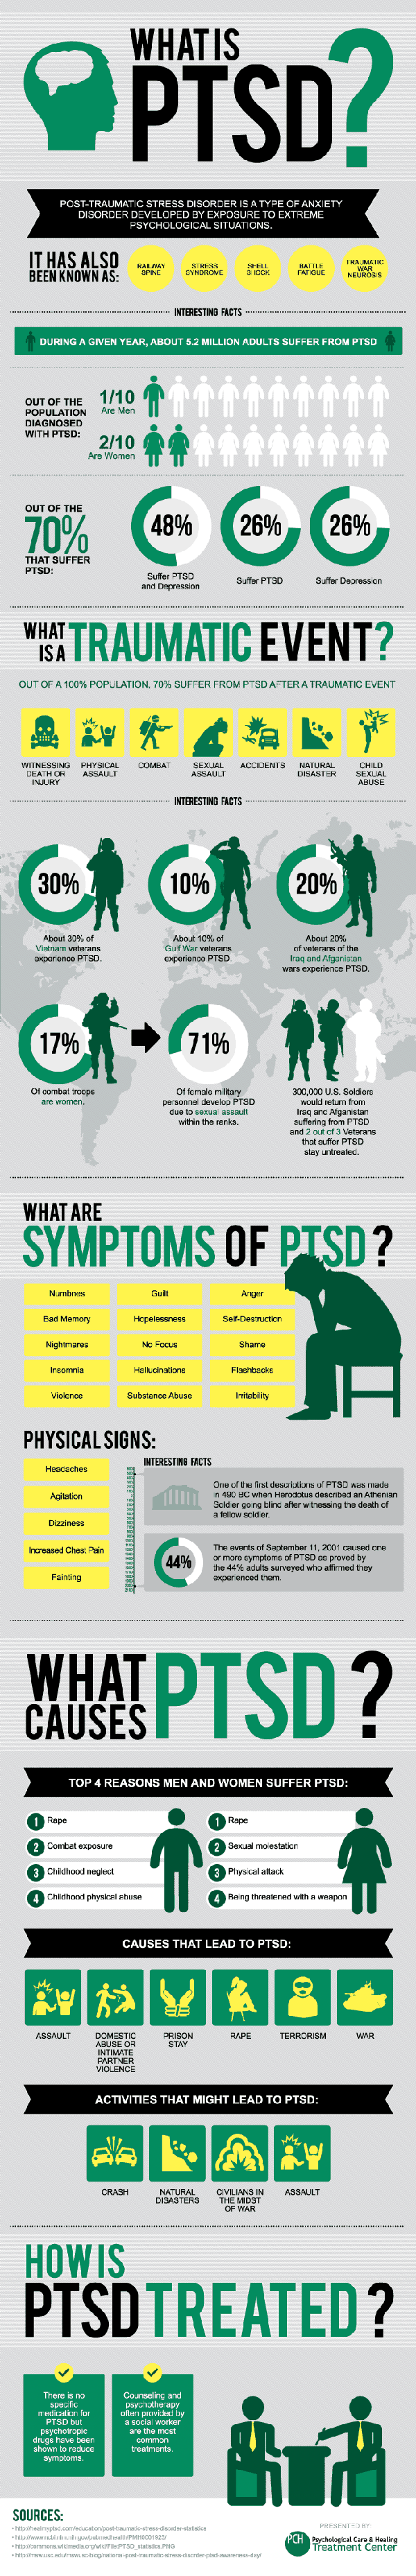 post-traumatic-stress-disorder-infographic